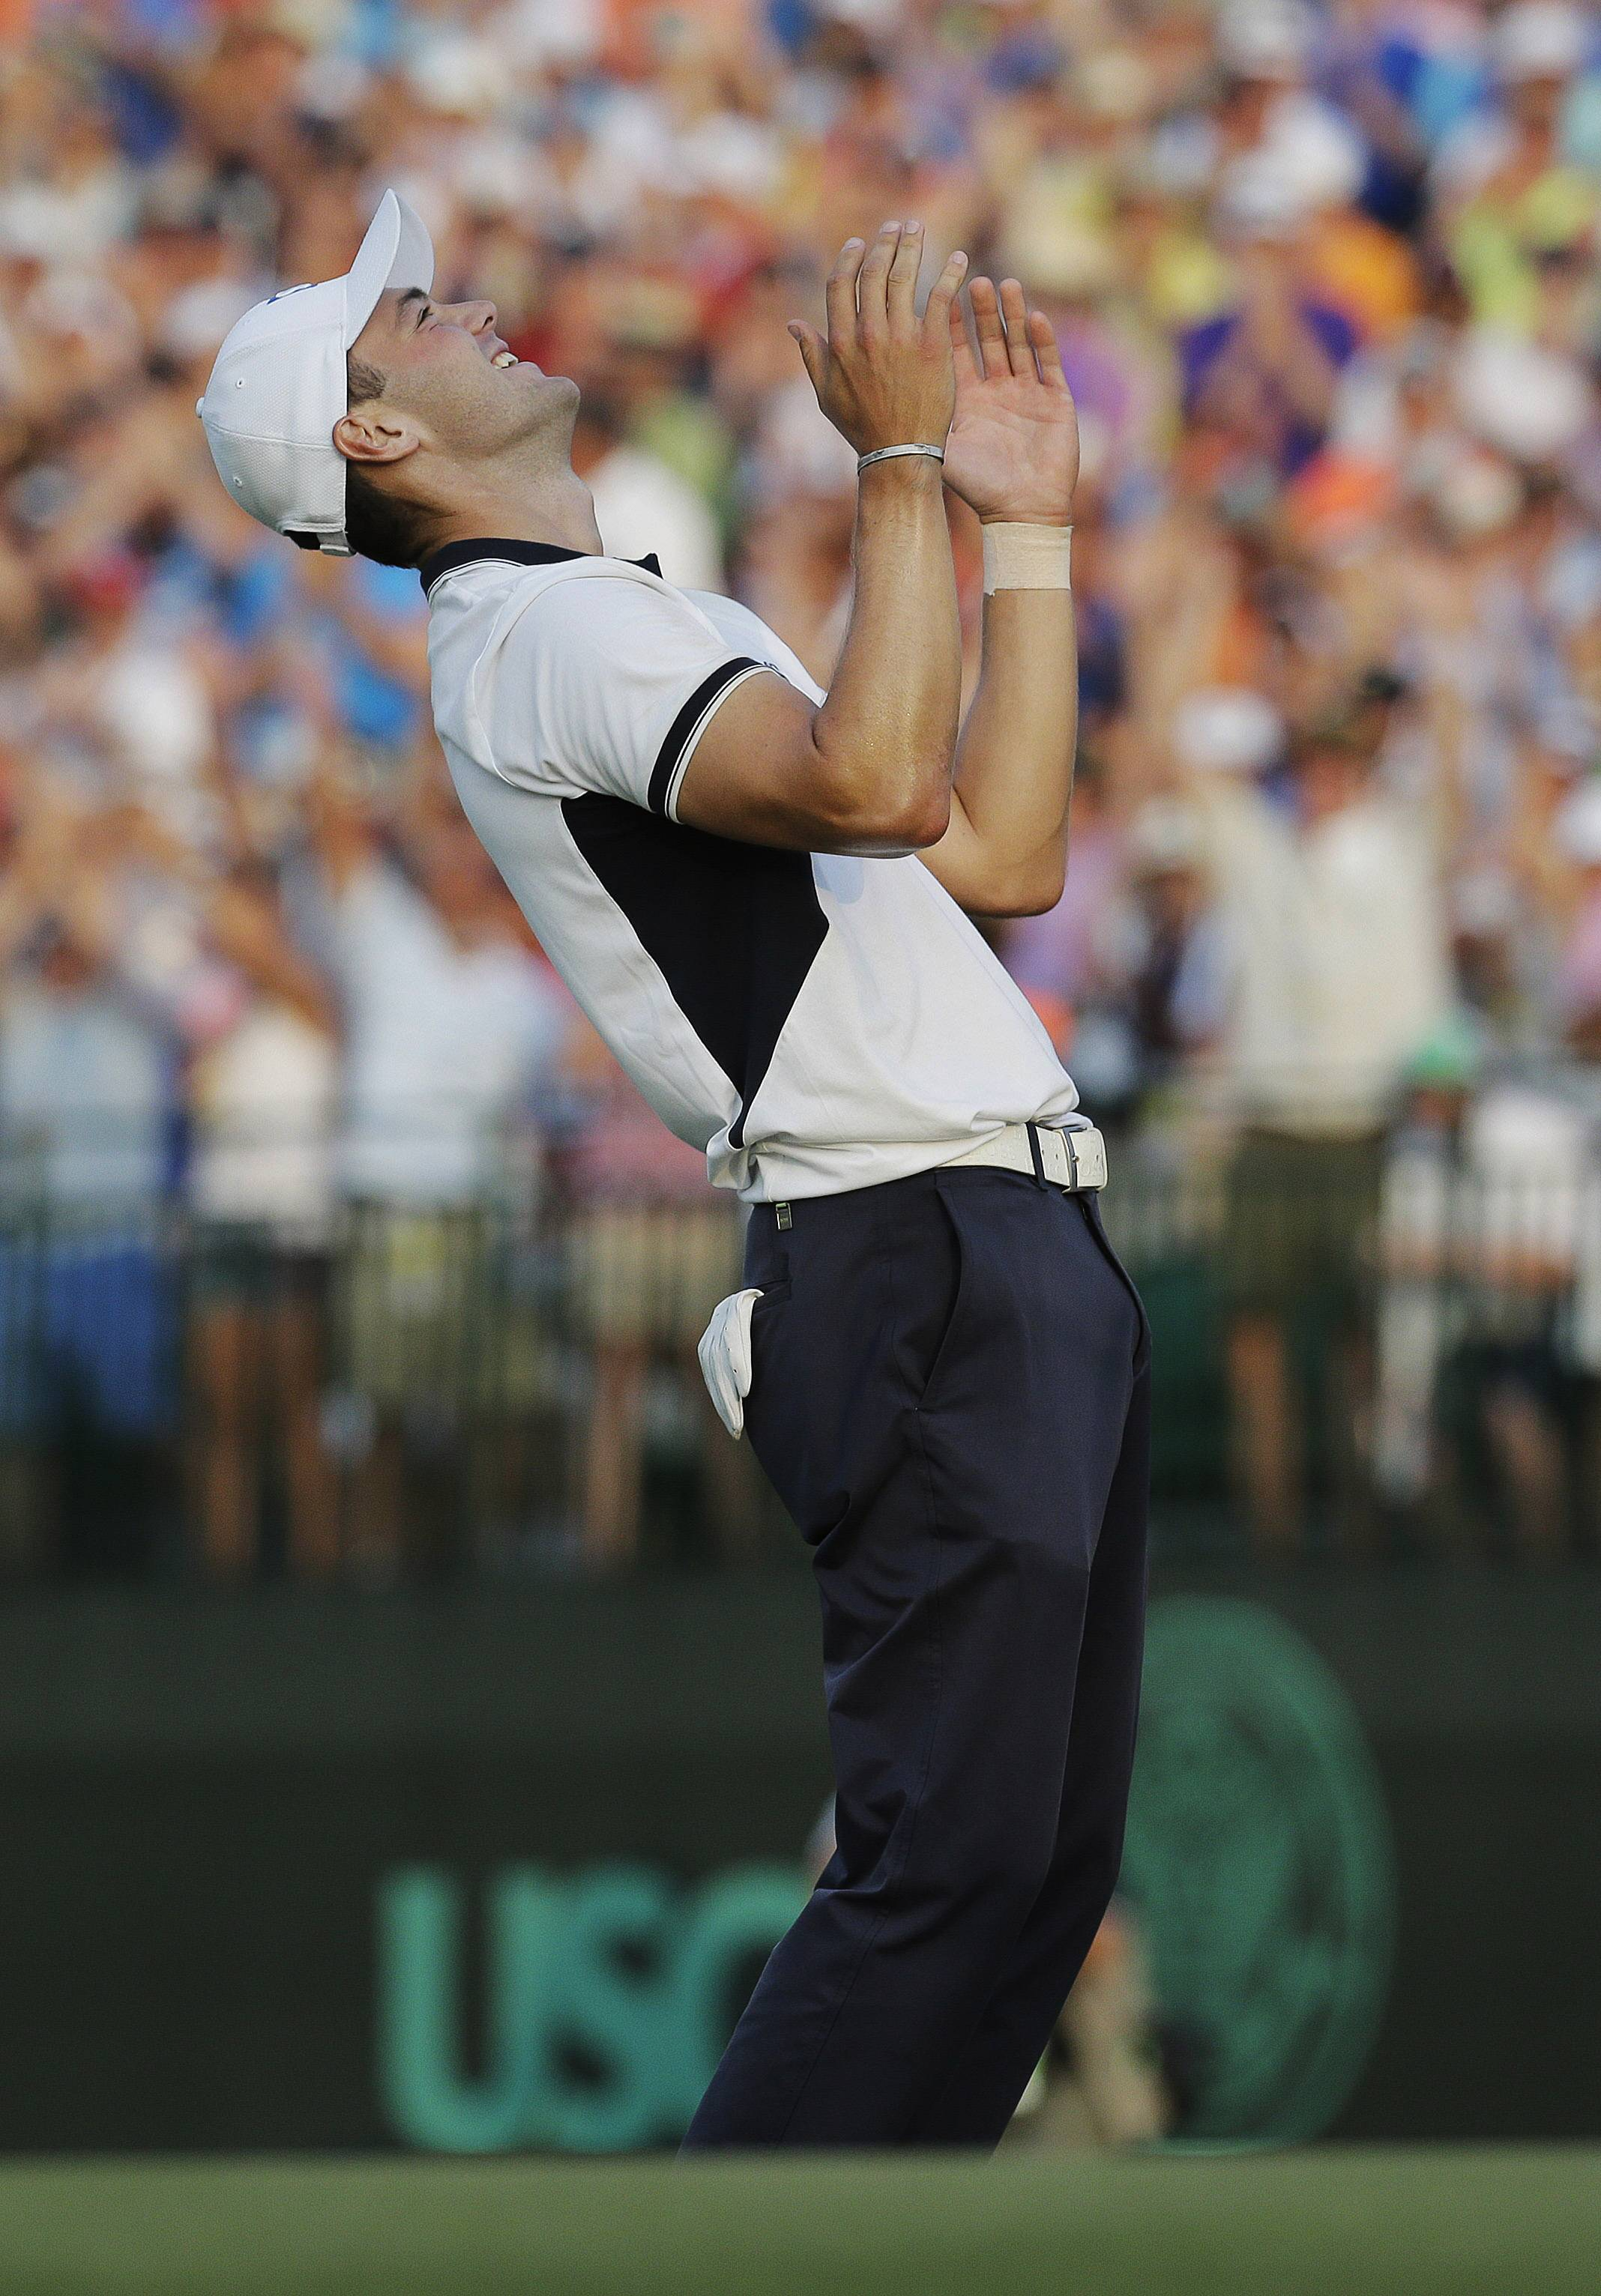 Martin Kaymer of Germany celebrates after winning the U.S. Open golf tournament in Pinehurst, N.C., Sunday. But did the Germans celebrate with him?